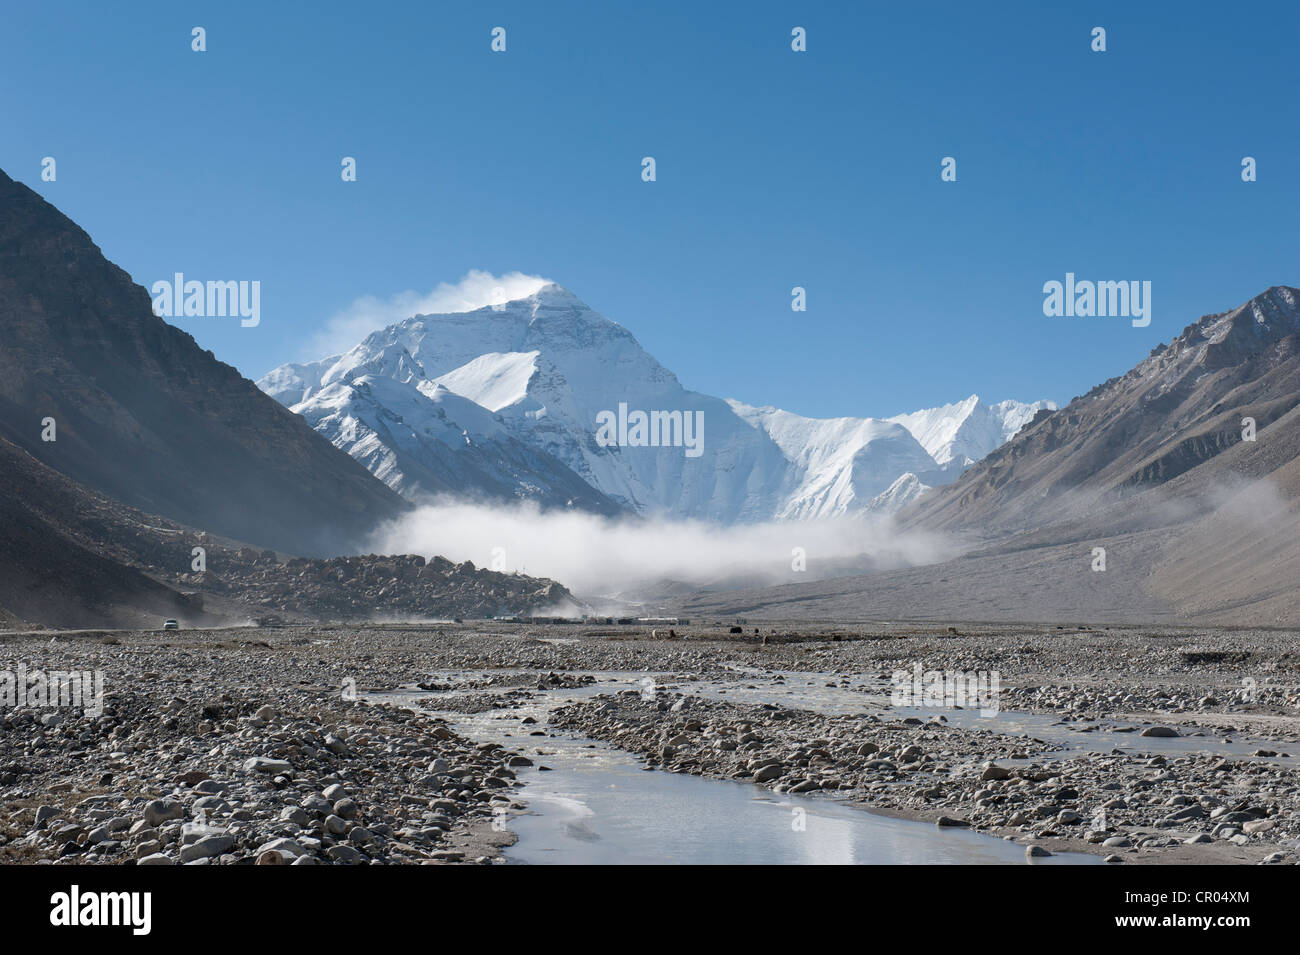 Summit of Mount Everest, light fog, Base Camp north side, glacial river, the Himalayas, central Tibet, U-Tsang - Stock Image